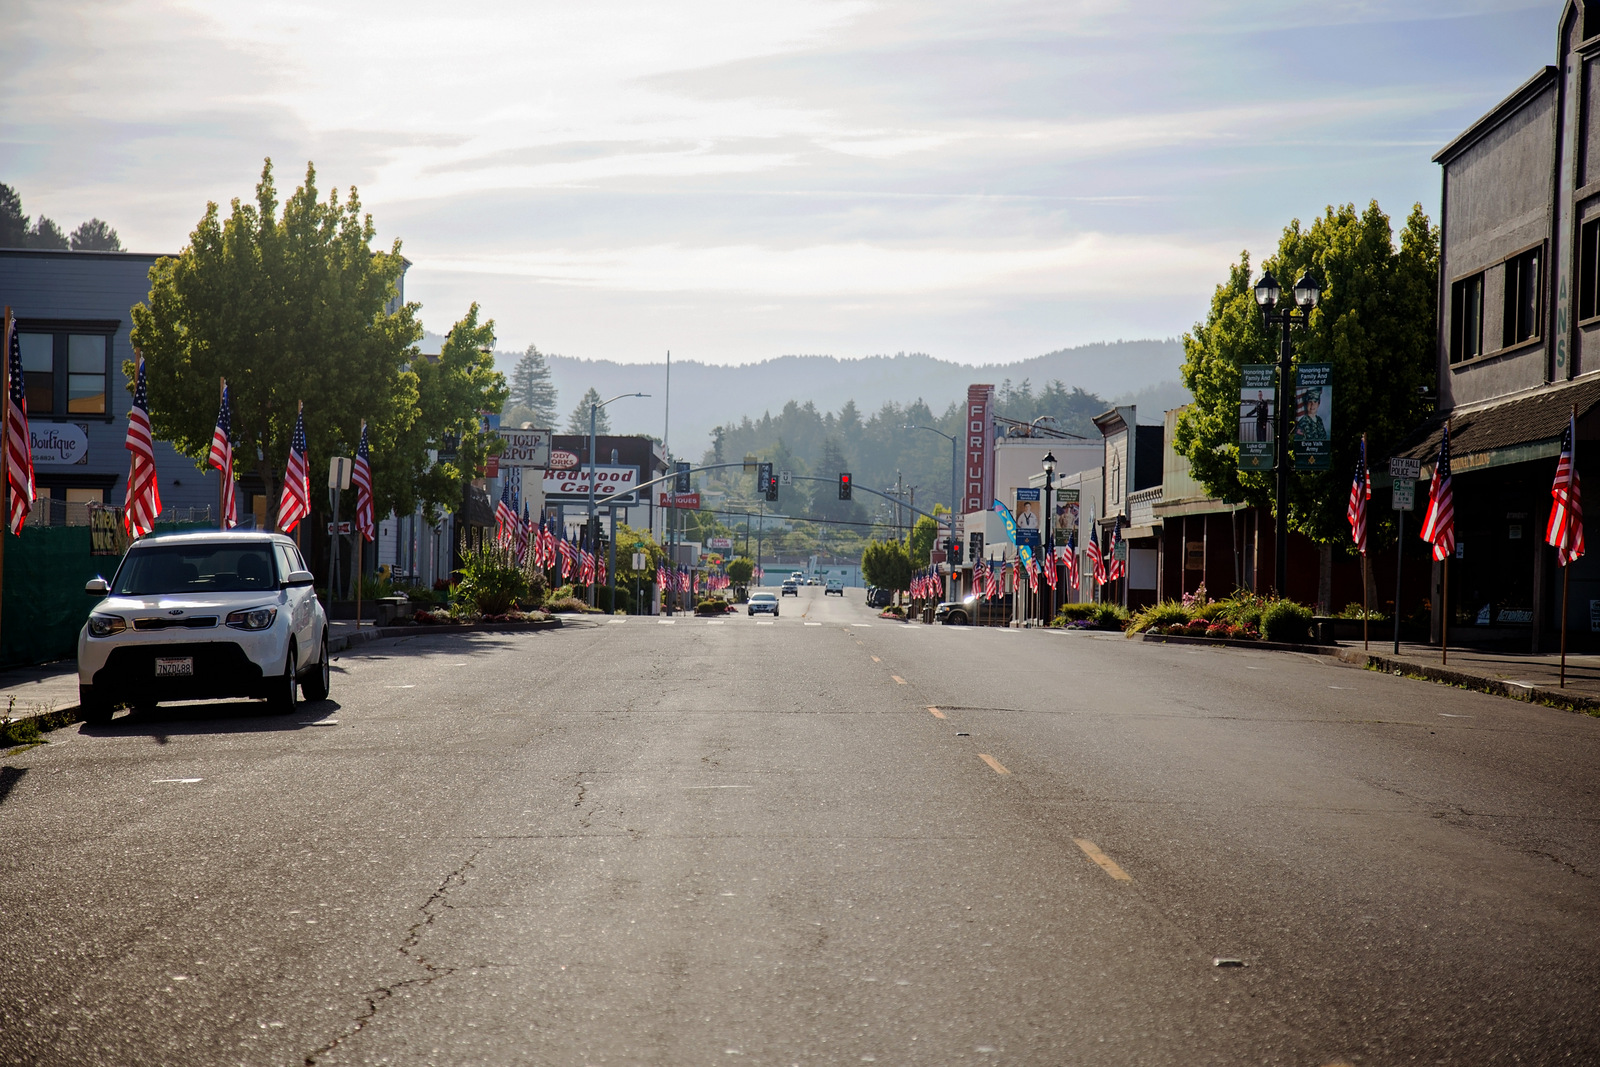 background image of main st